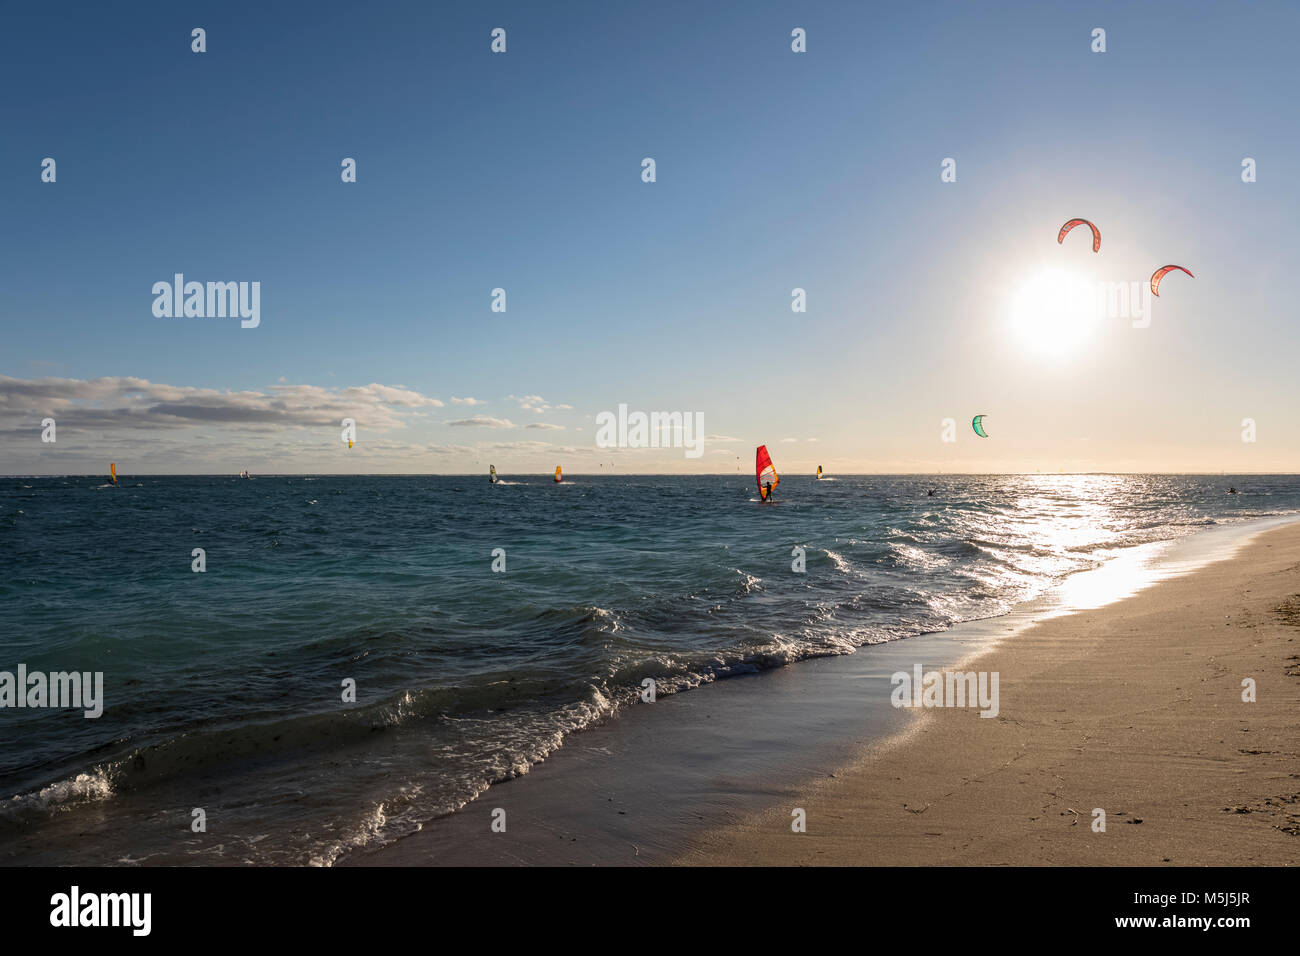 Mauritius, Southwest Coast, beach of Le Morne with kite surfers and sail boarders - Stock Image